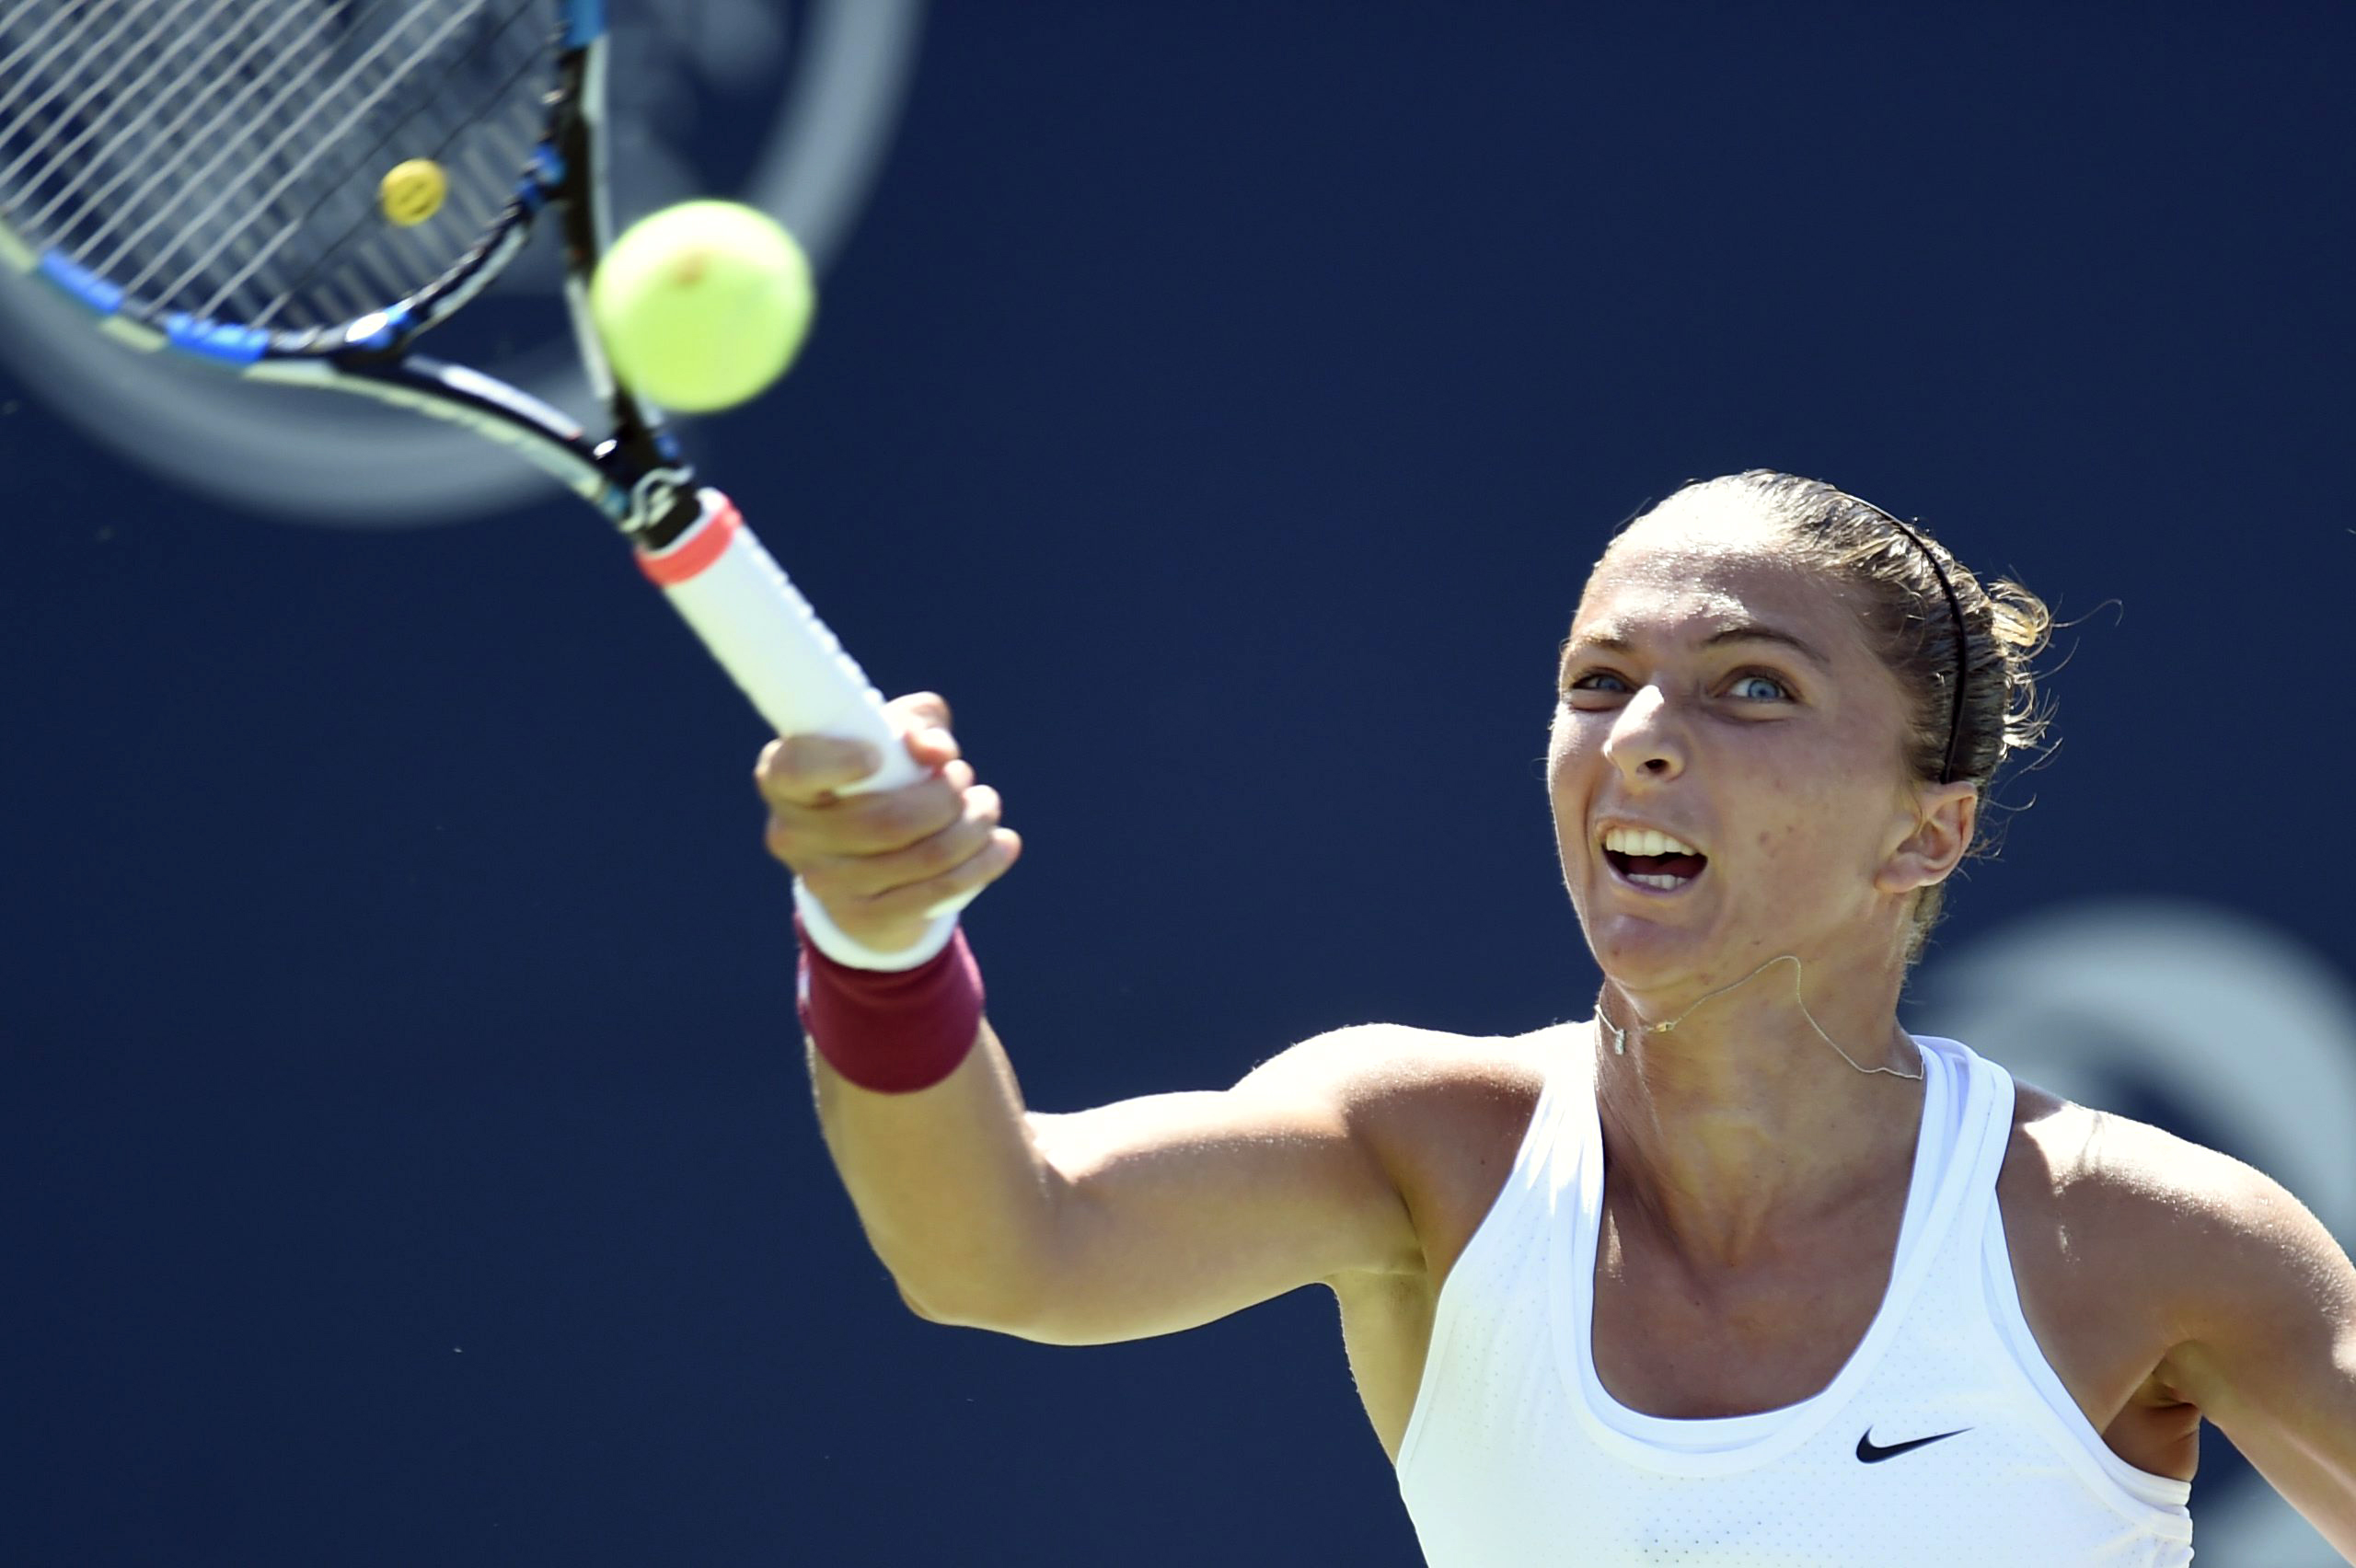 Sara Errani, of Italy, returns to opponent Simona Halep, of Romania, during a Rogers Cup semifinal tennis match in Toronto on Saturday, Aug. 15, 2015. (Frank Gunn /The Canadian Press via AP) MANDATORY CREDIT